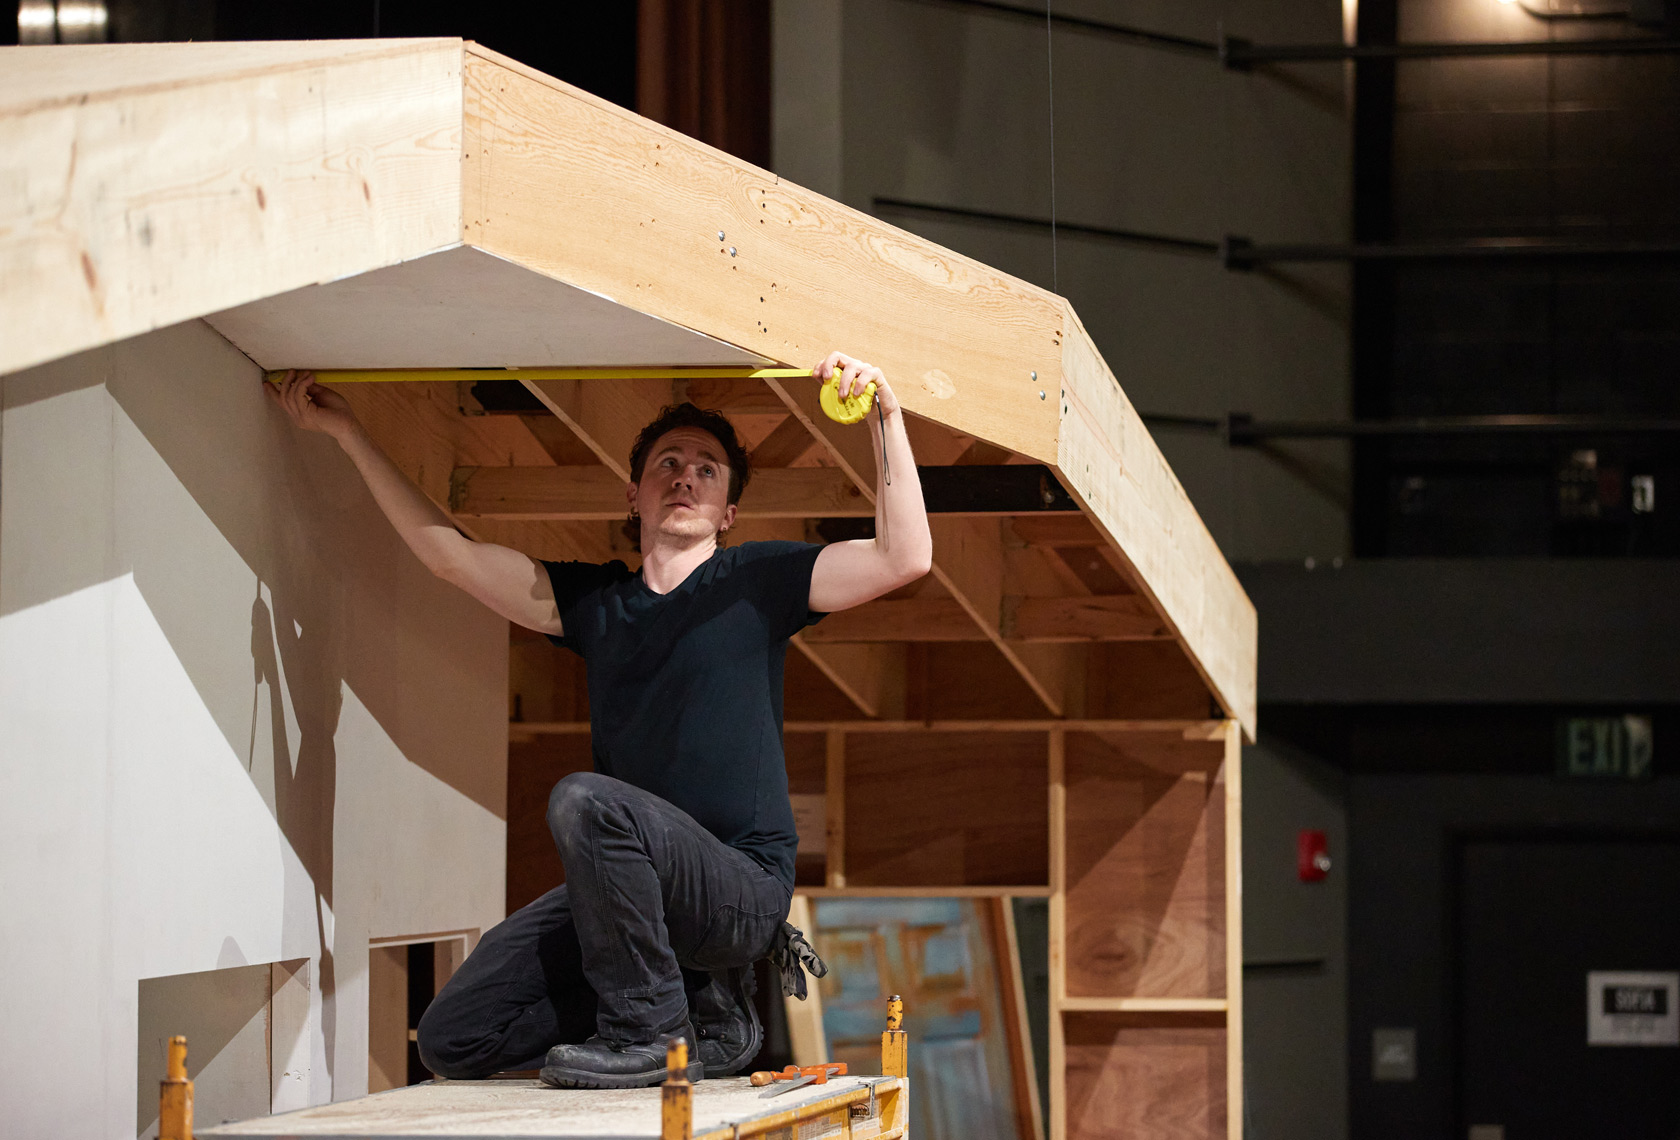 Building Roof on Theater Set